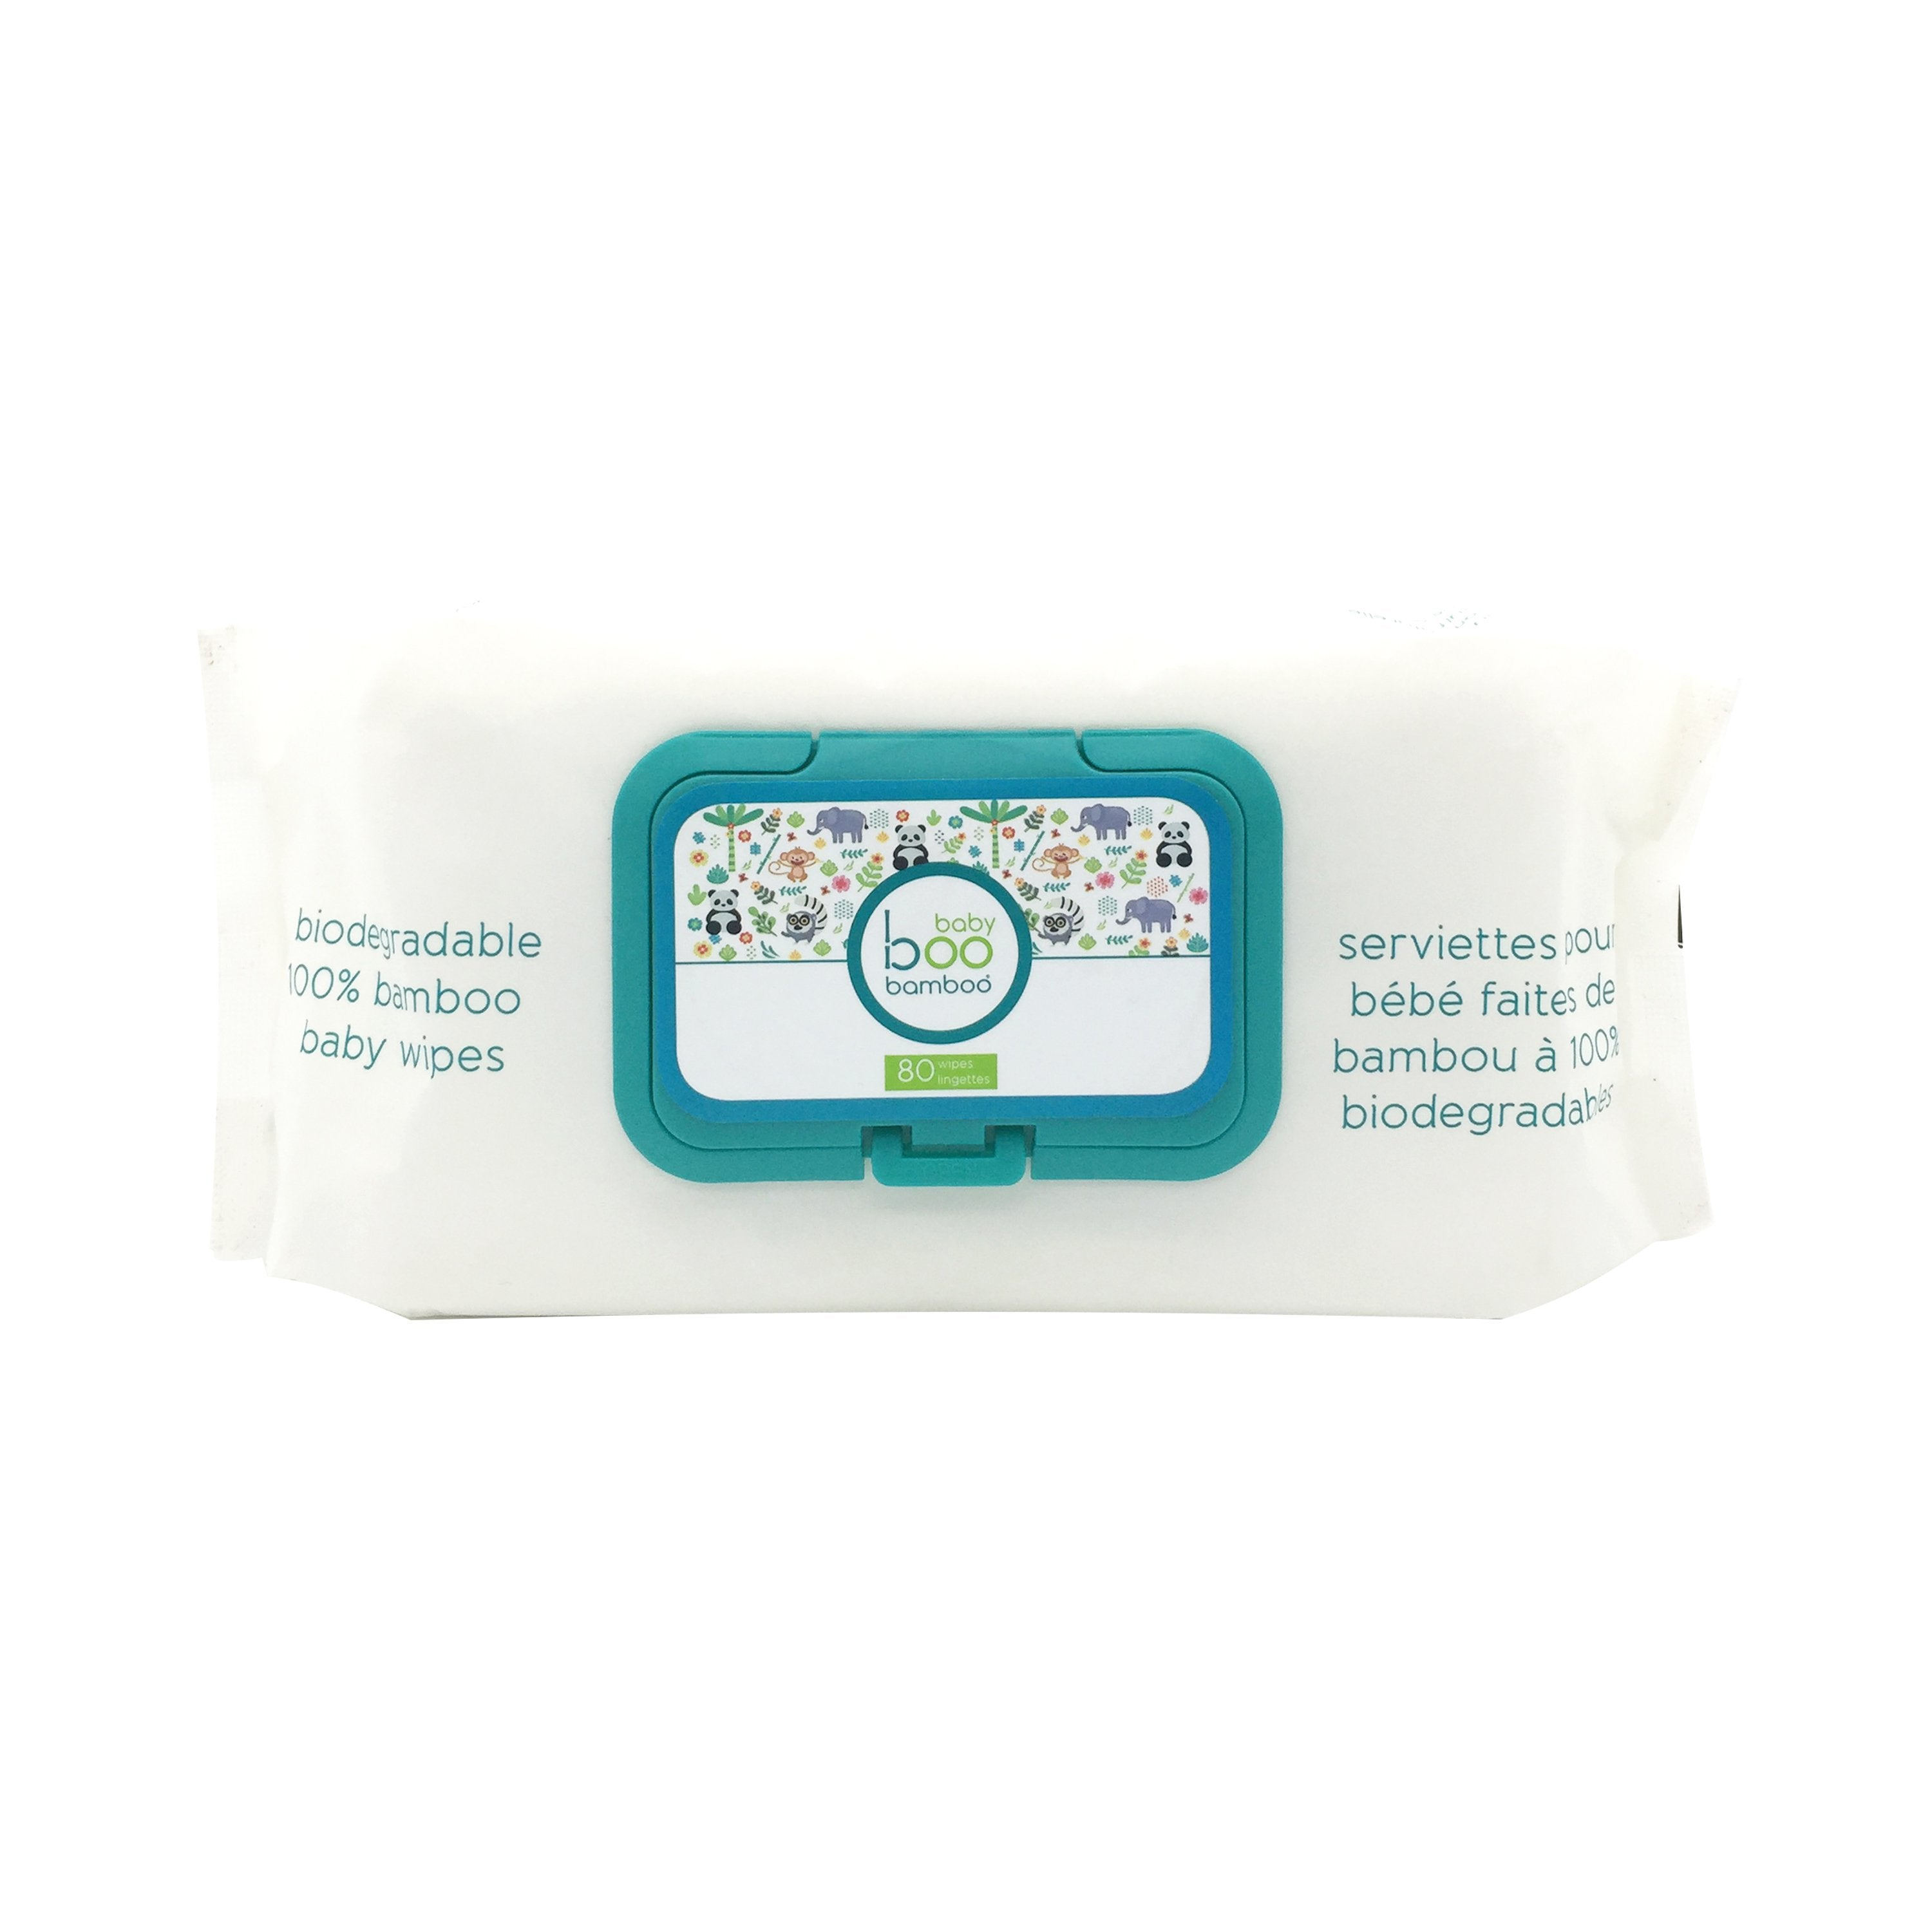 Baby Boo Bamboo Biodegradable Bamboo Baby Wipes - 80ct